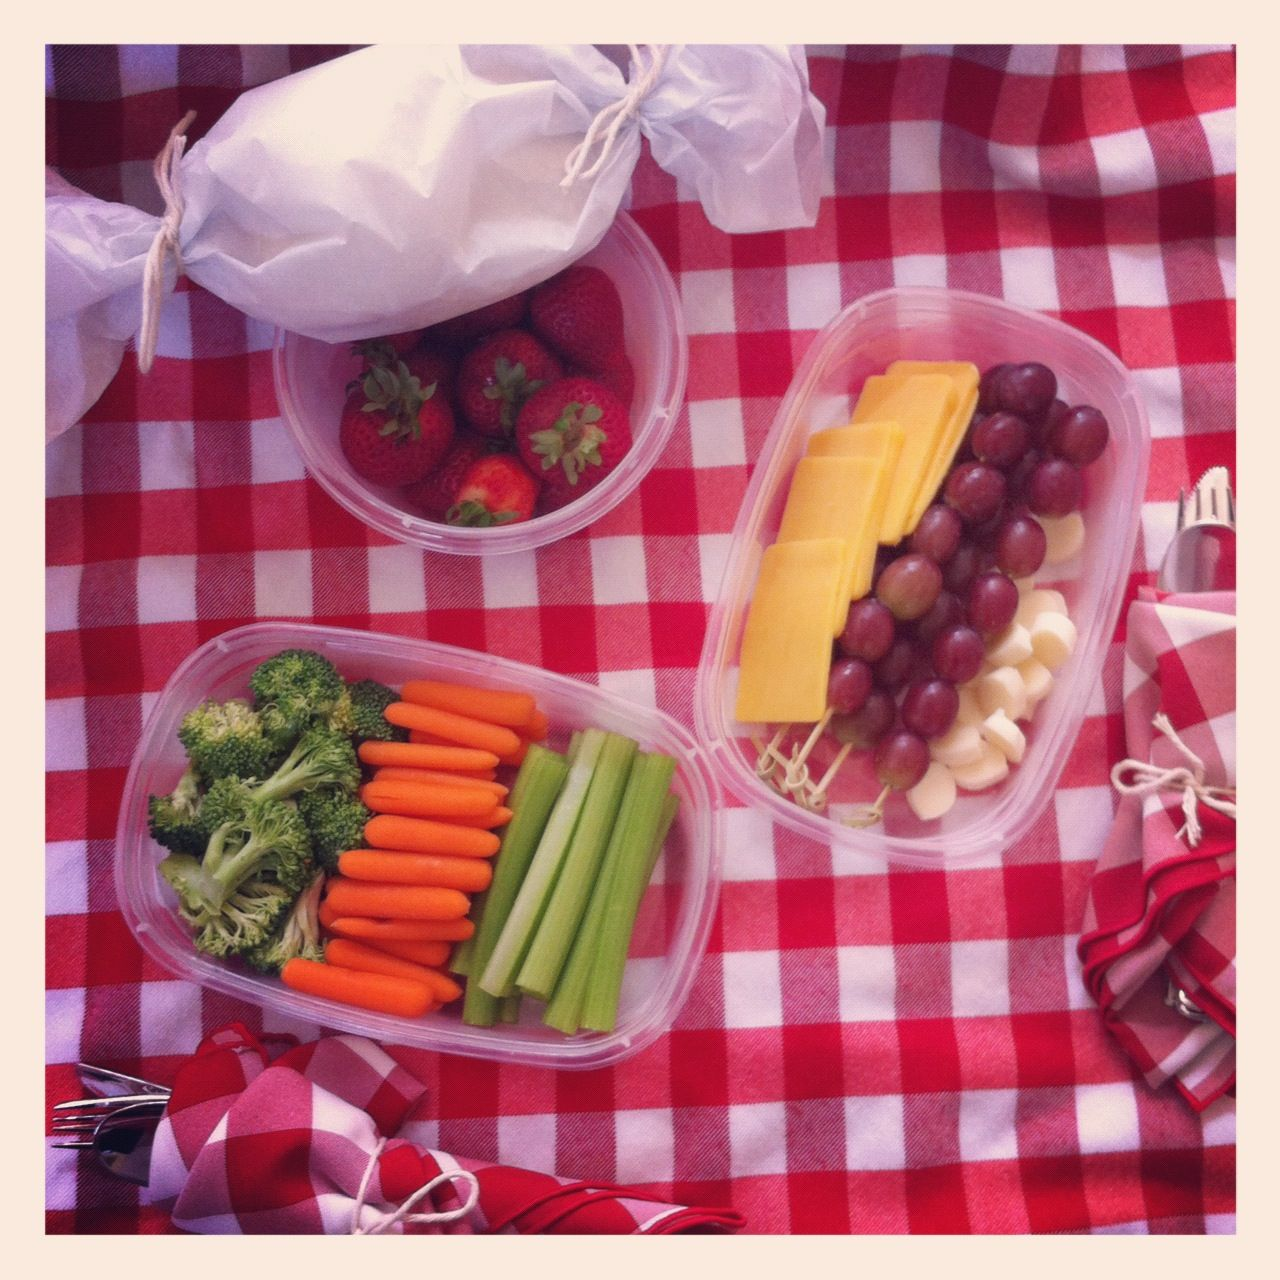 Picnic For Two Romantic Picnic Food Picnic Food Picnic